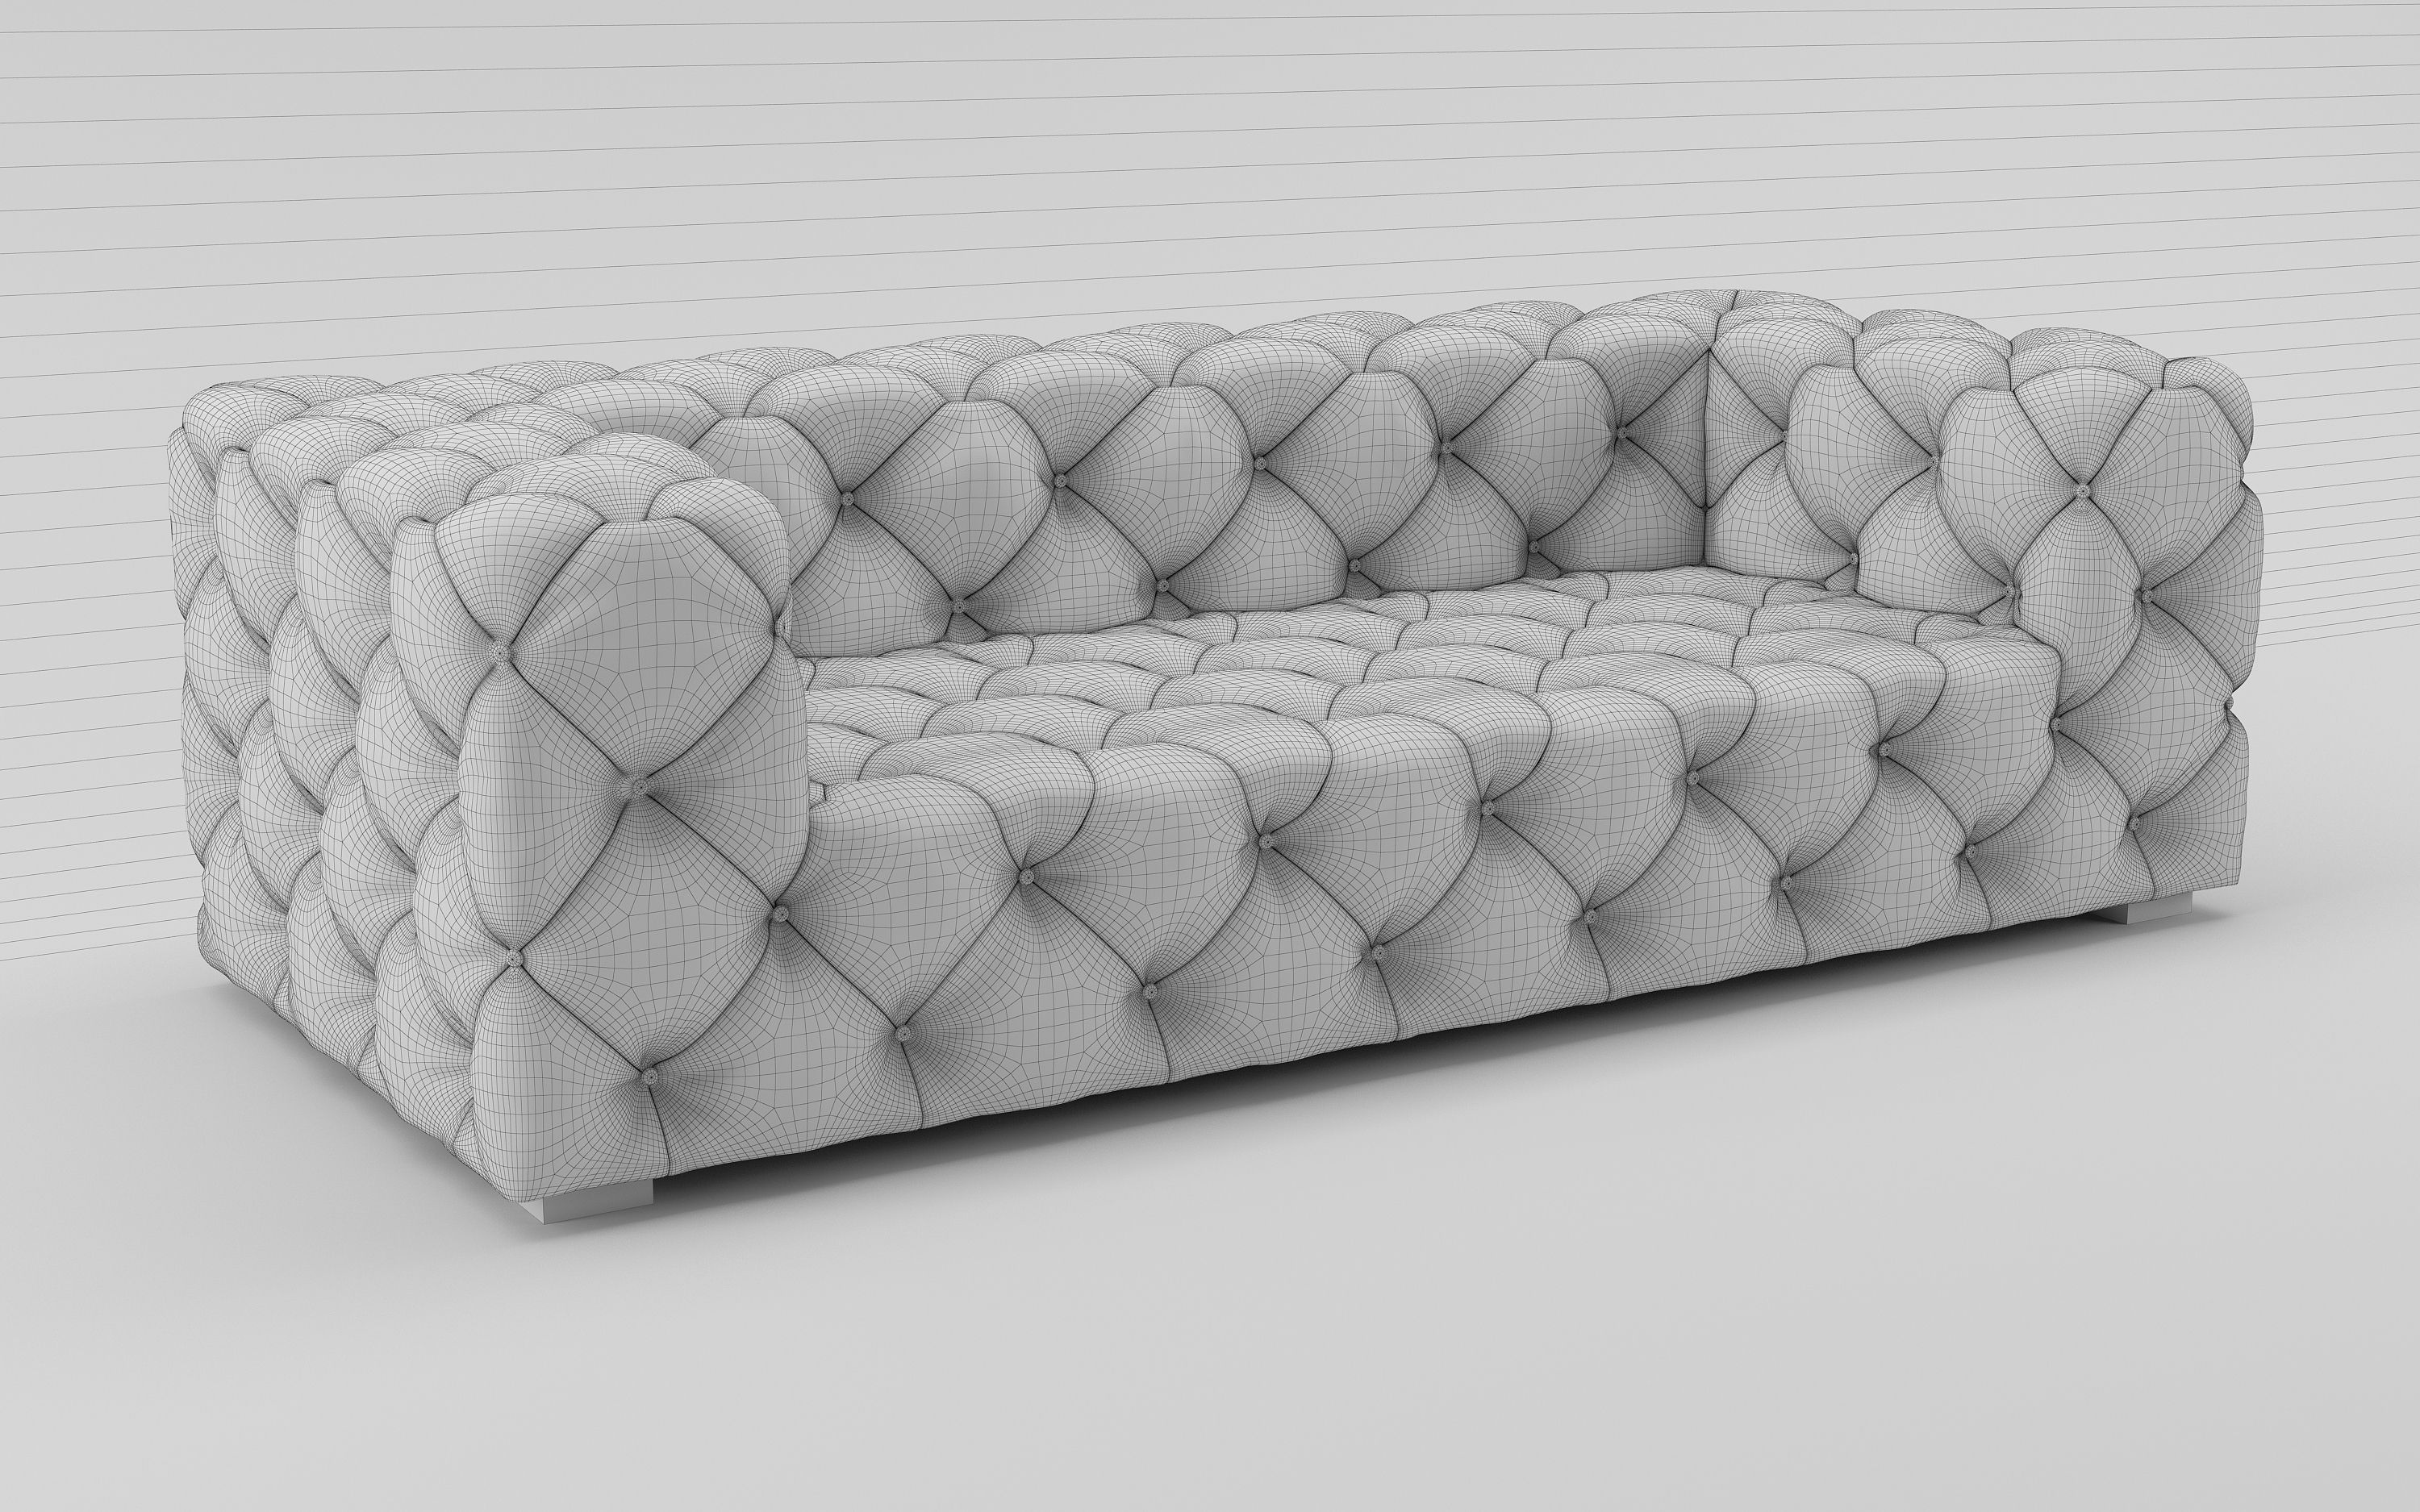 3D model SOHO TUFTED LEATHER SOFA | CGTrader